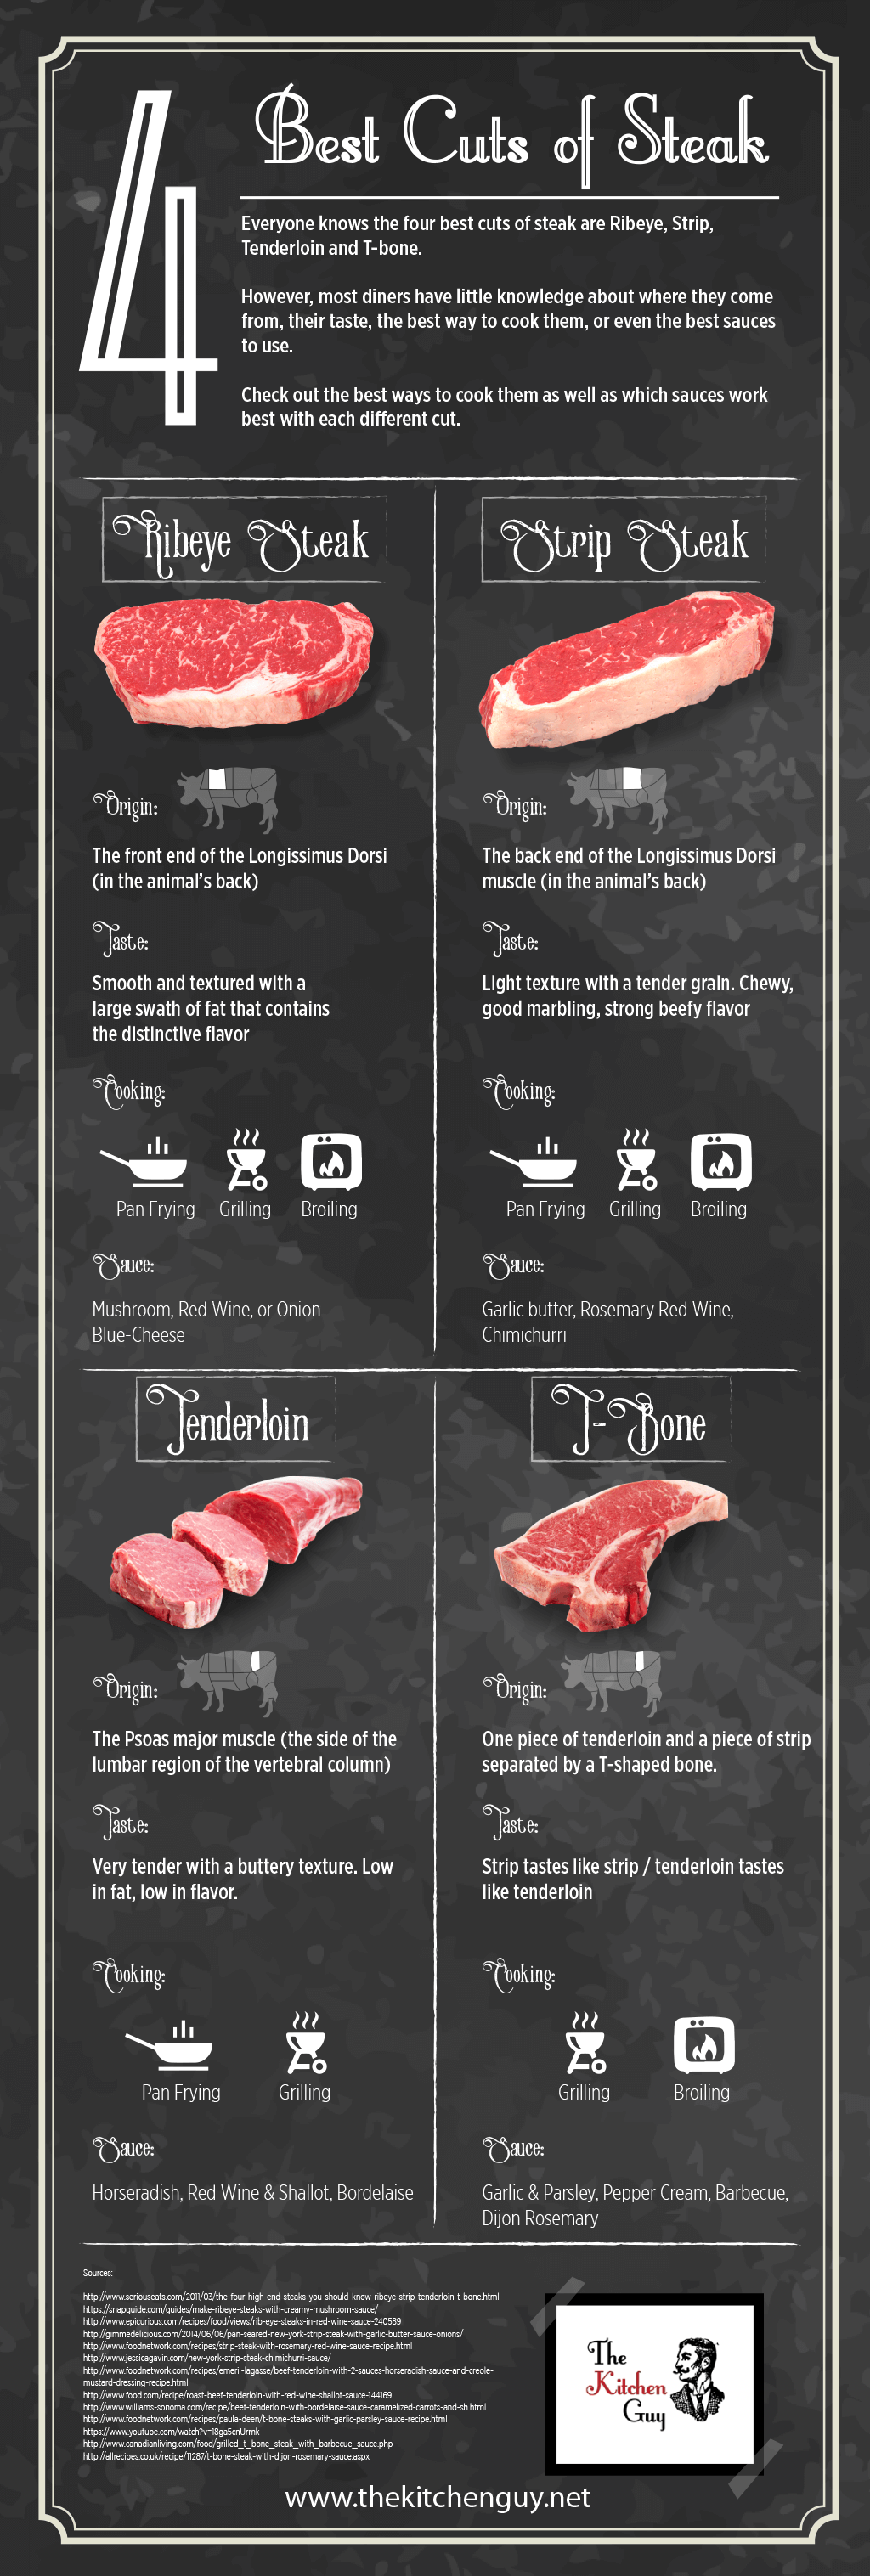 best-cuts-of-steak-infographic-plaza